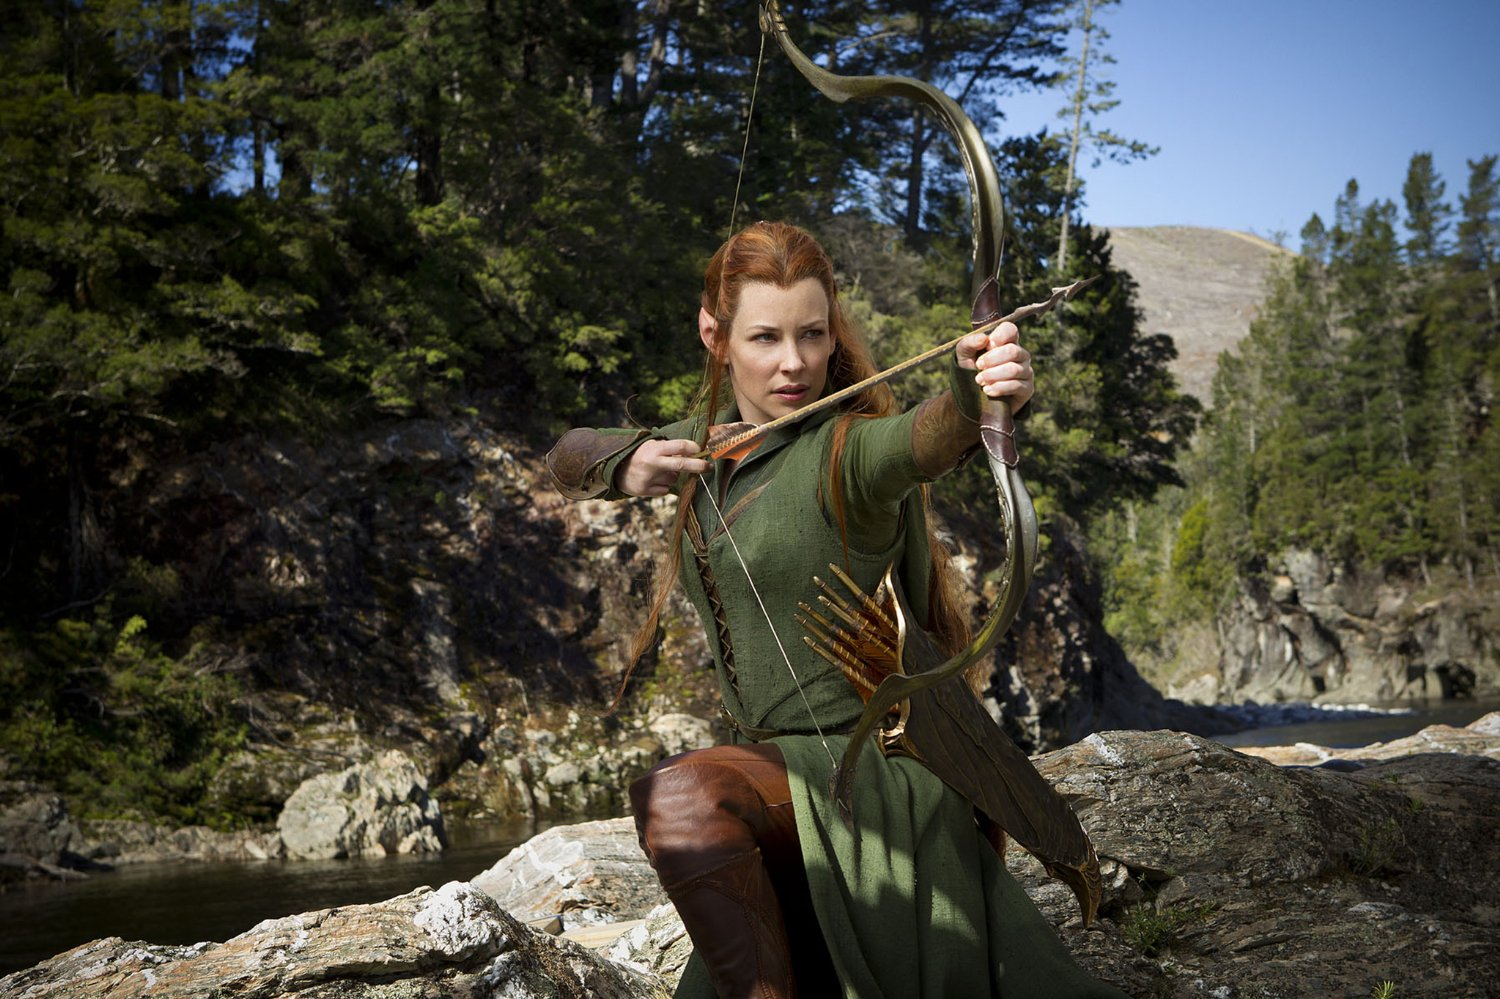 Evangeline Lilly as Tauriel in The Hobbit: The Desolation of Smaug (2013)